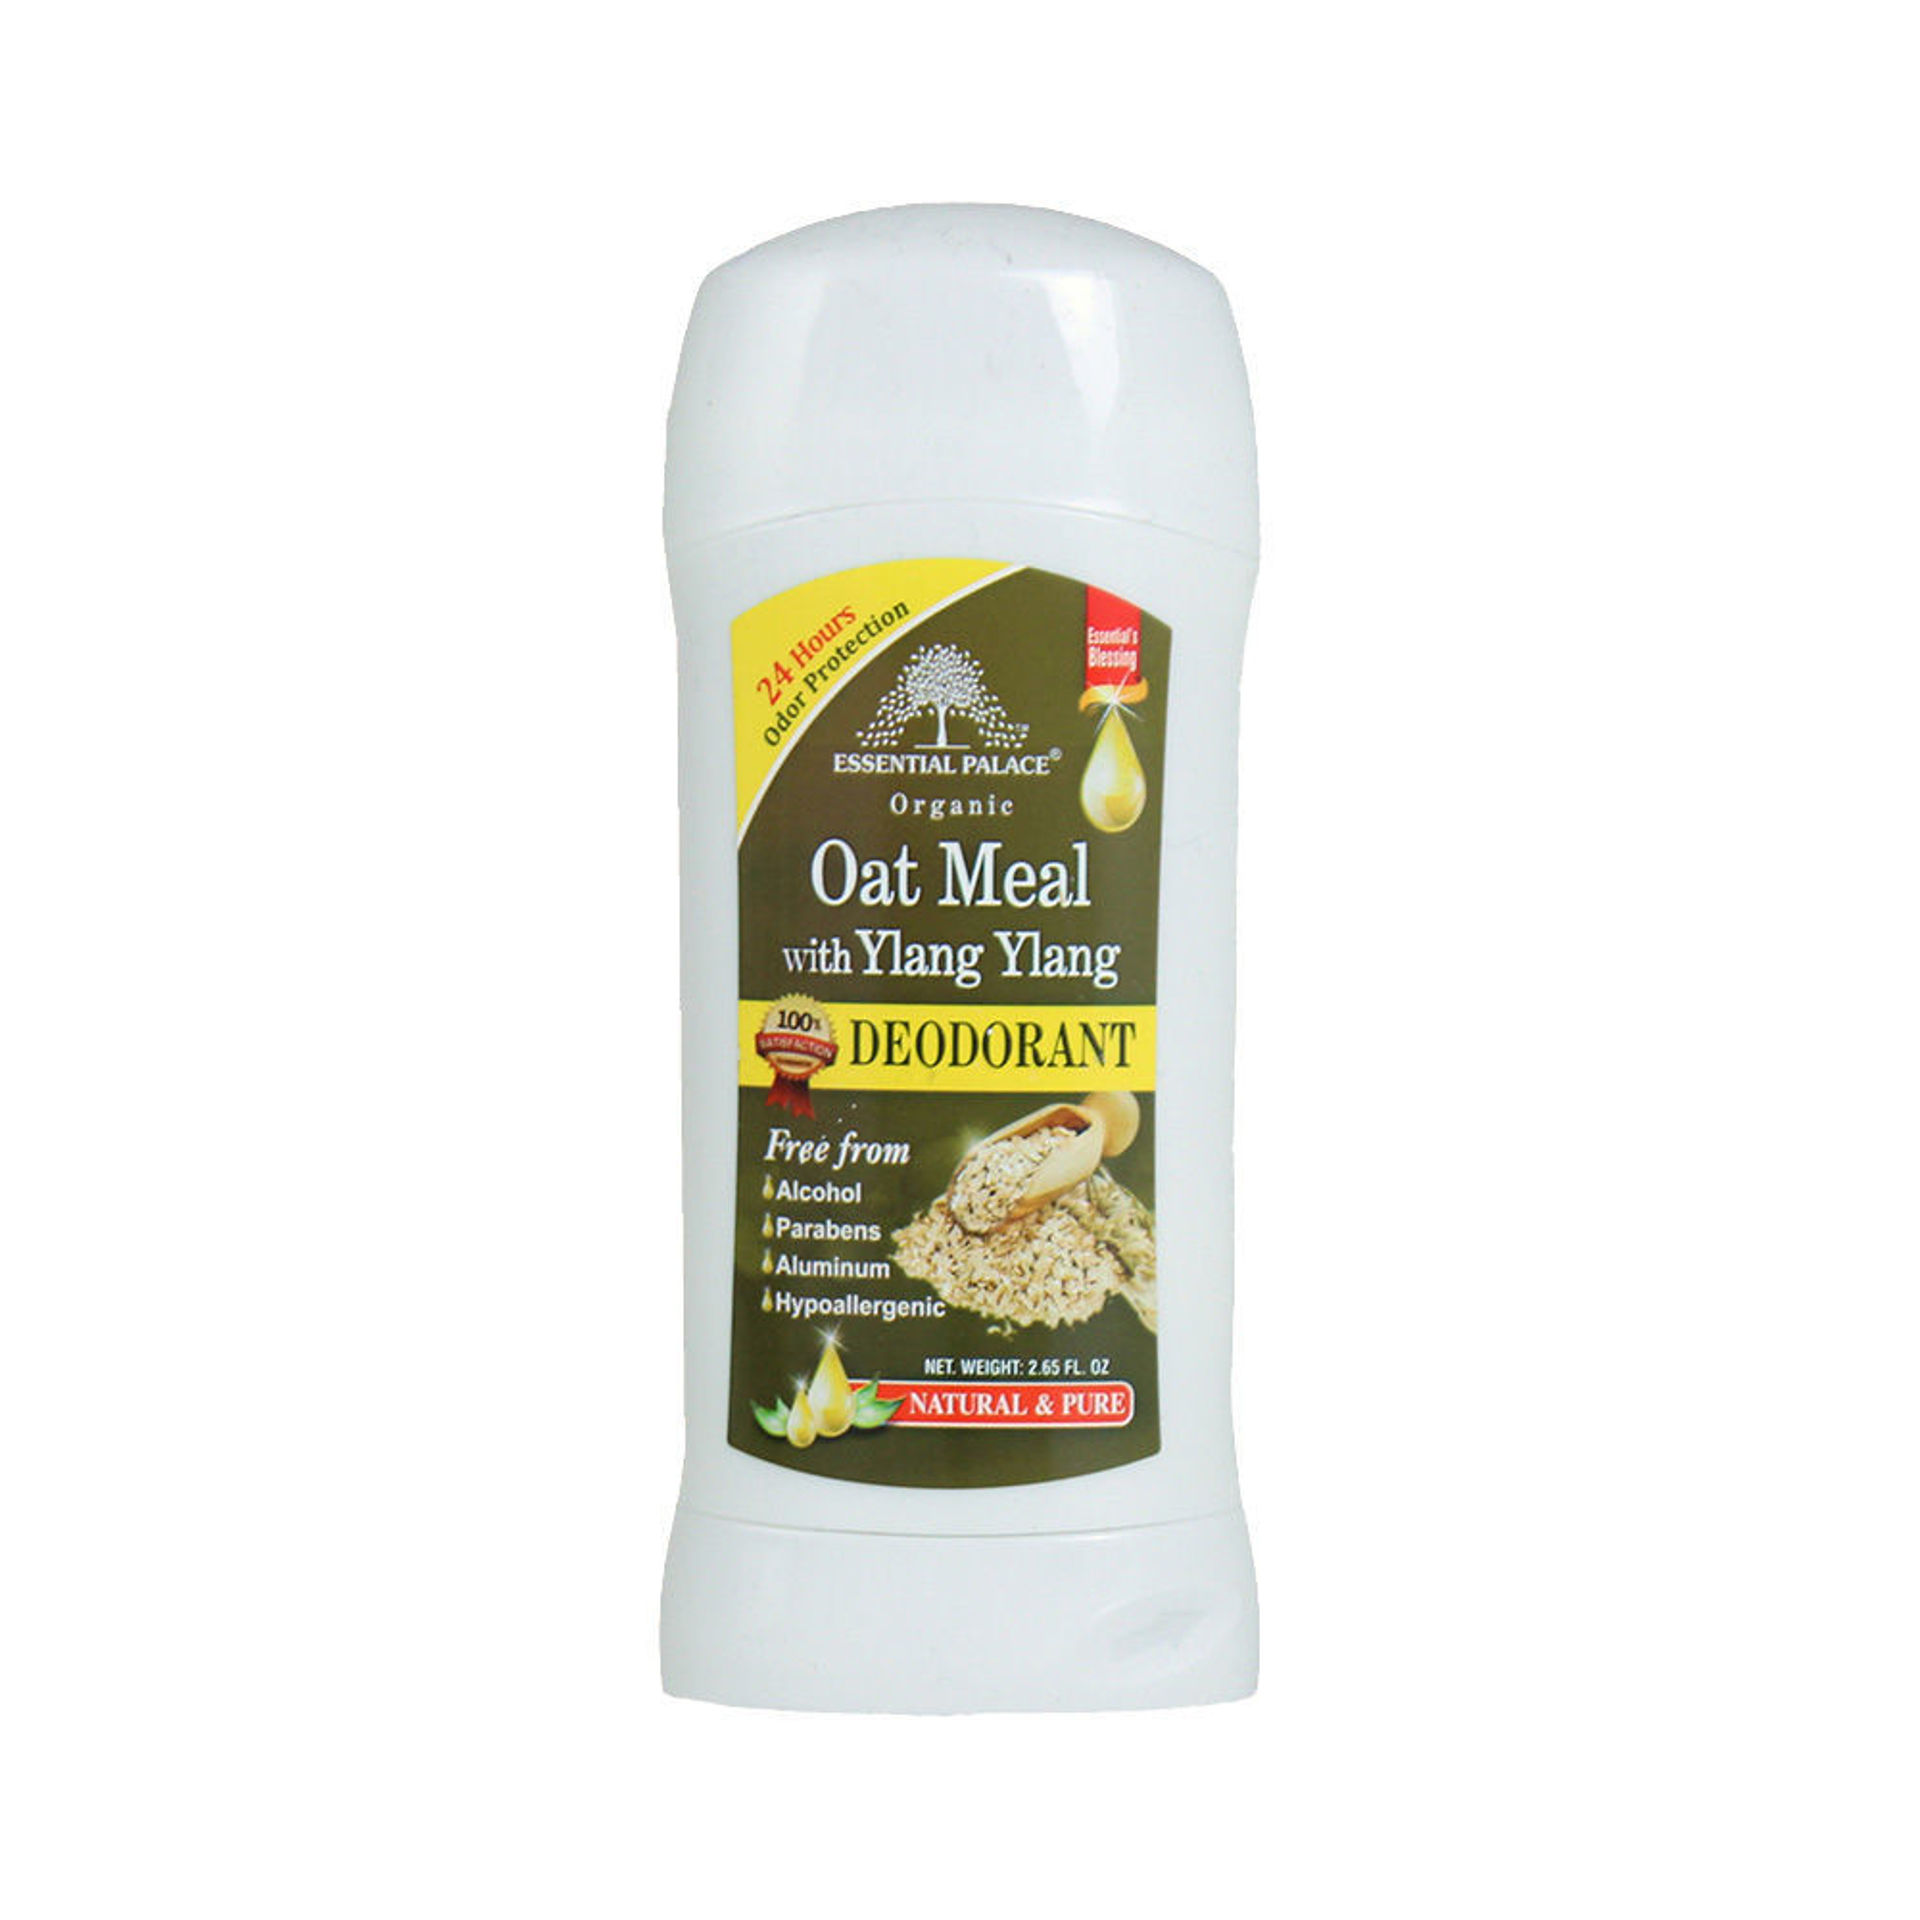 Picture of Oat Meal & Ylang Ylang Deodorant